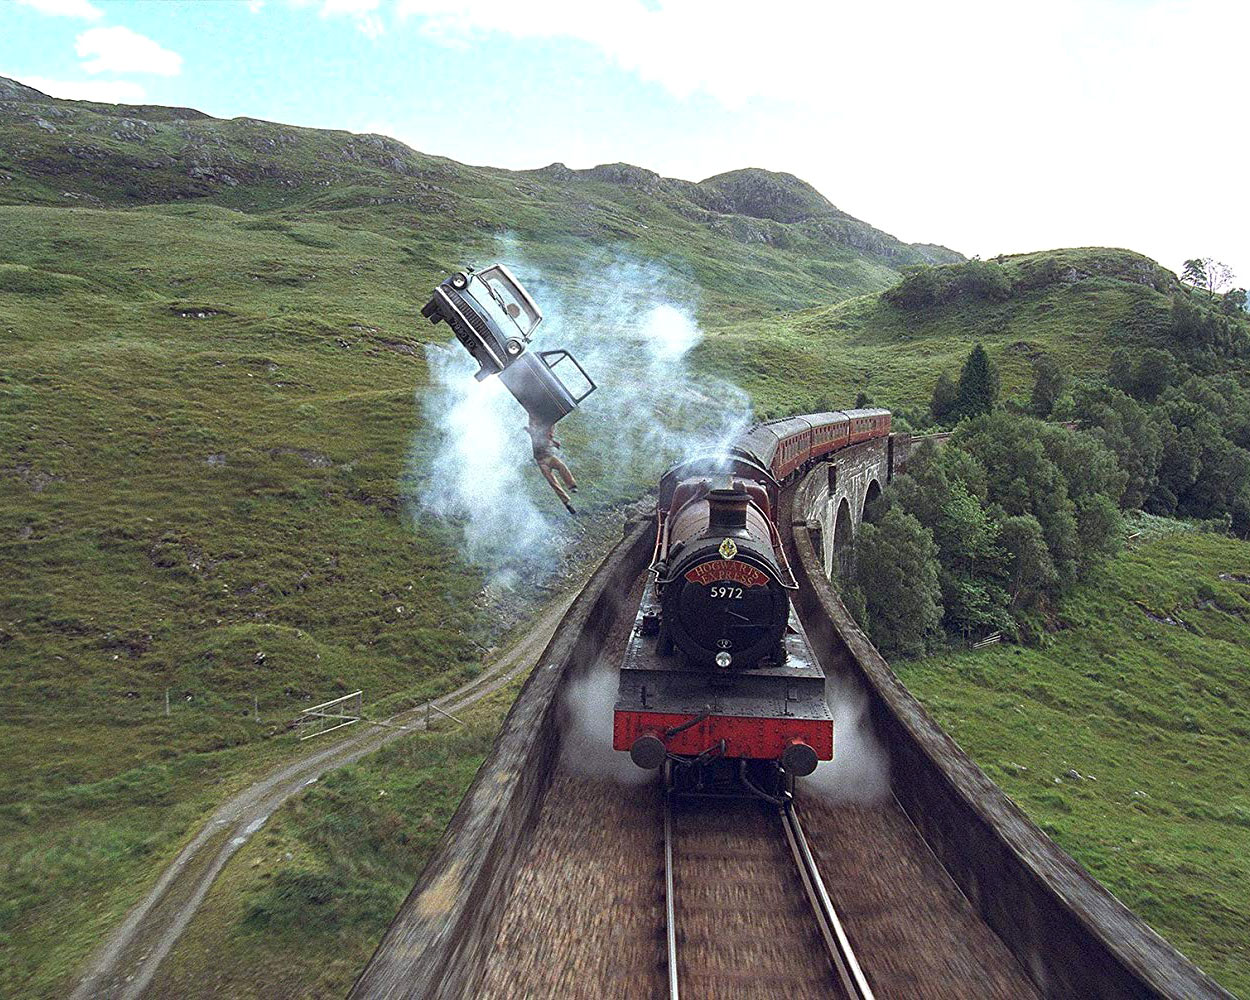 The Hogwarts Express Is Now Running So Your Honeymoon Plans Have Changed